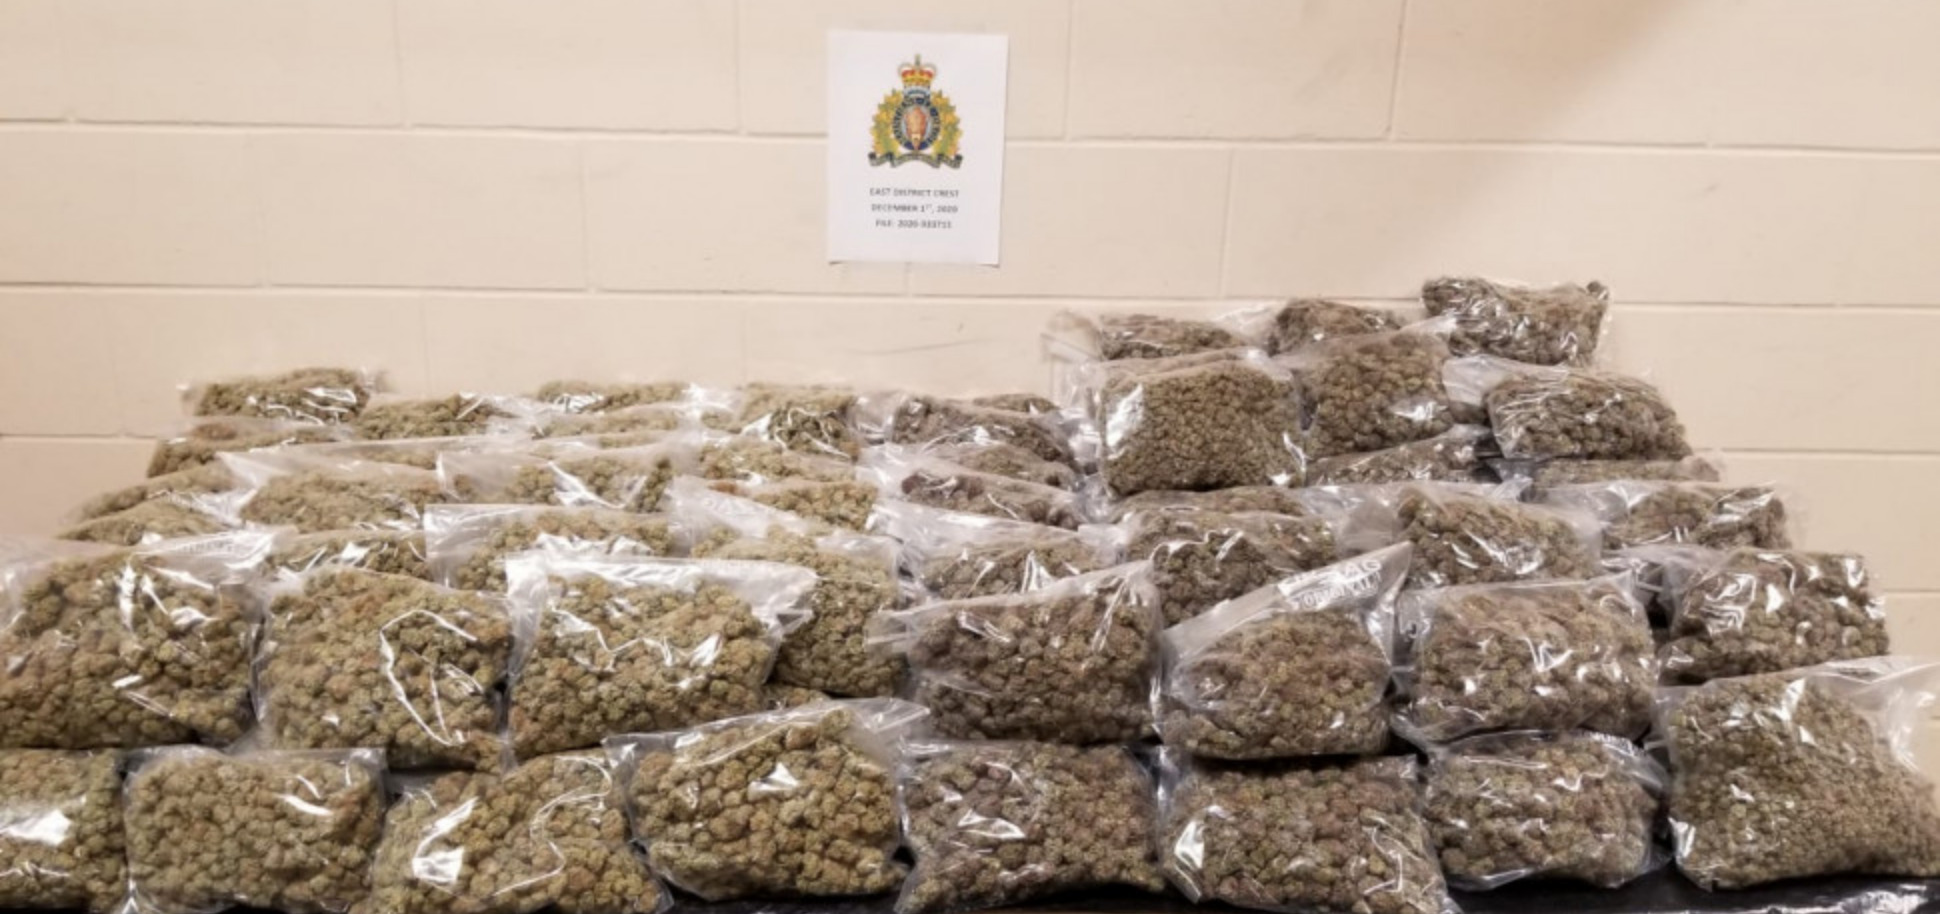 Manitoba RCMP seize over 27 kilograms of cannabis during a traffic stop